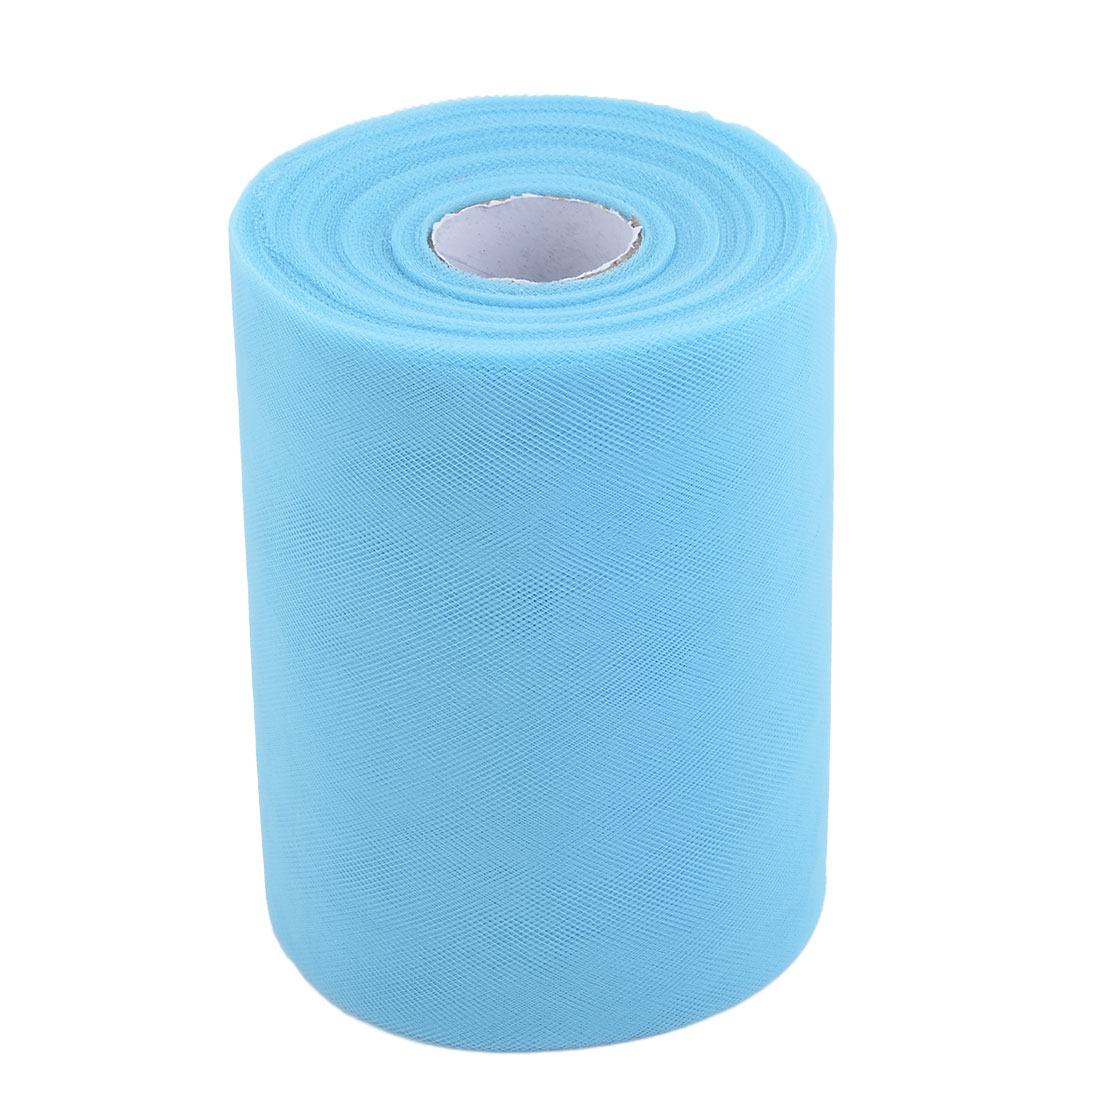 Home Polyester Tutu Gift Packing Ornament Tulle Spool Roll Light Blue 6 Inch x 100 Yards